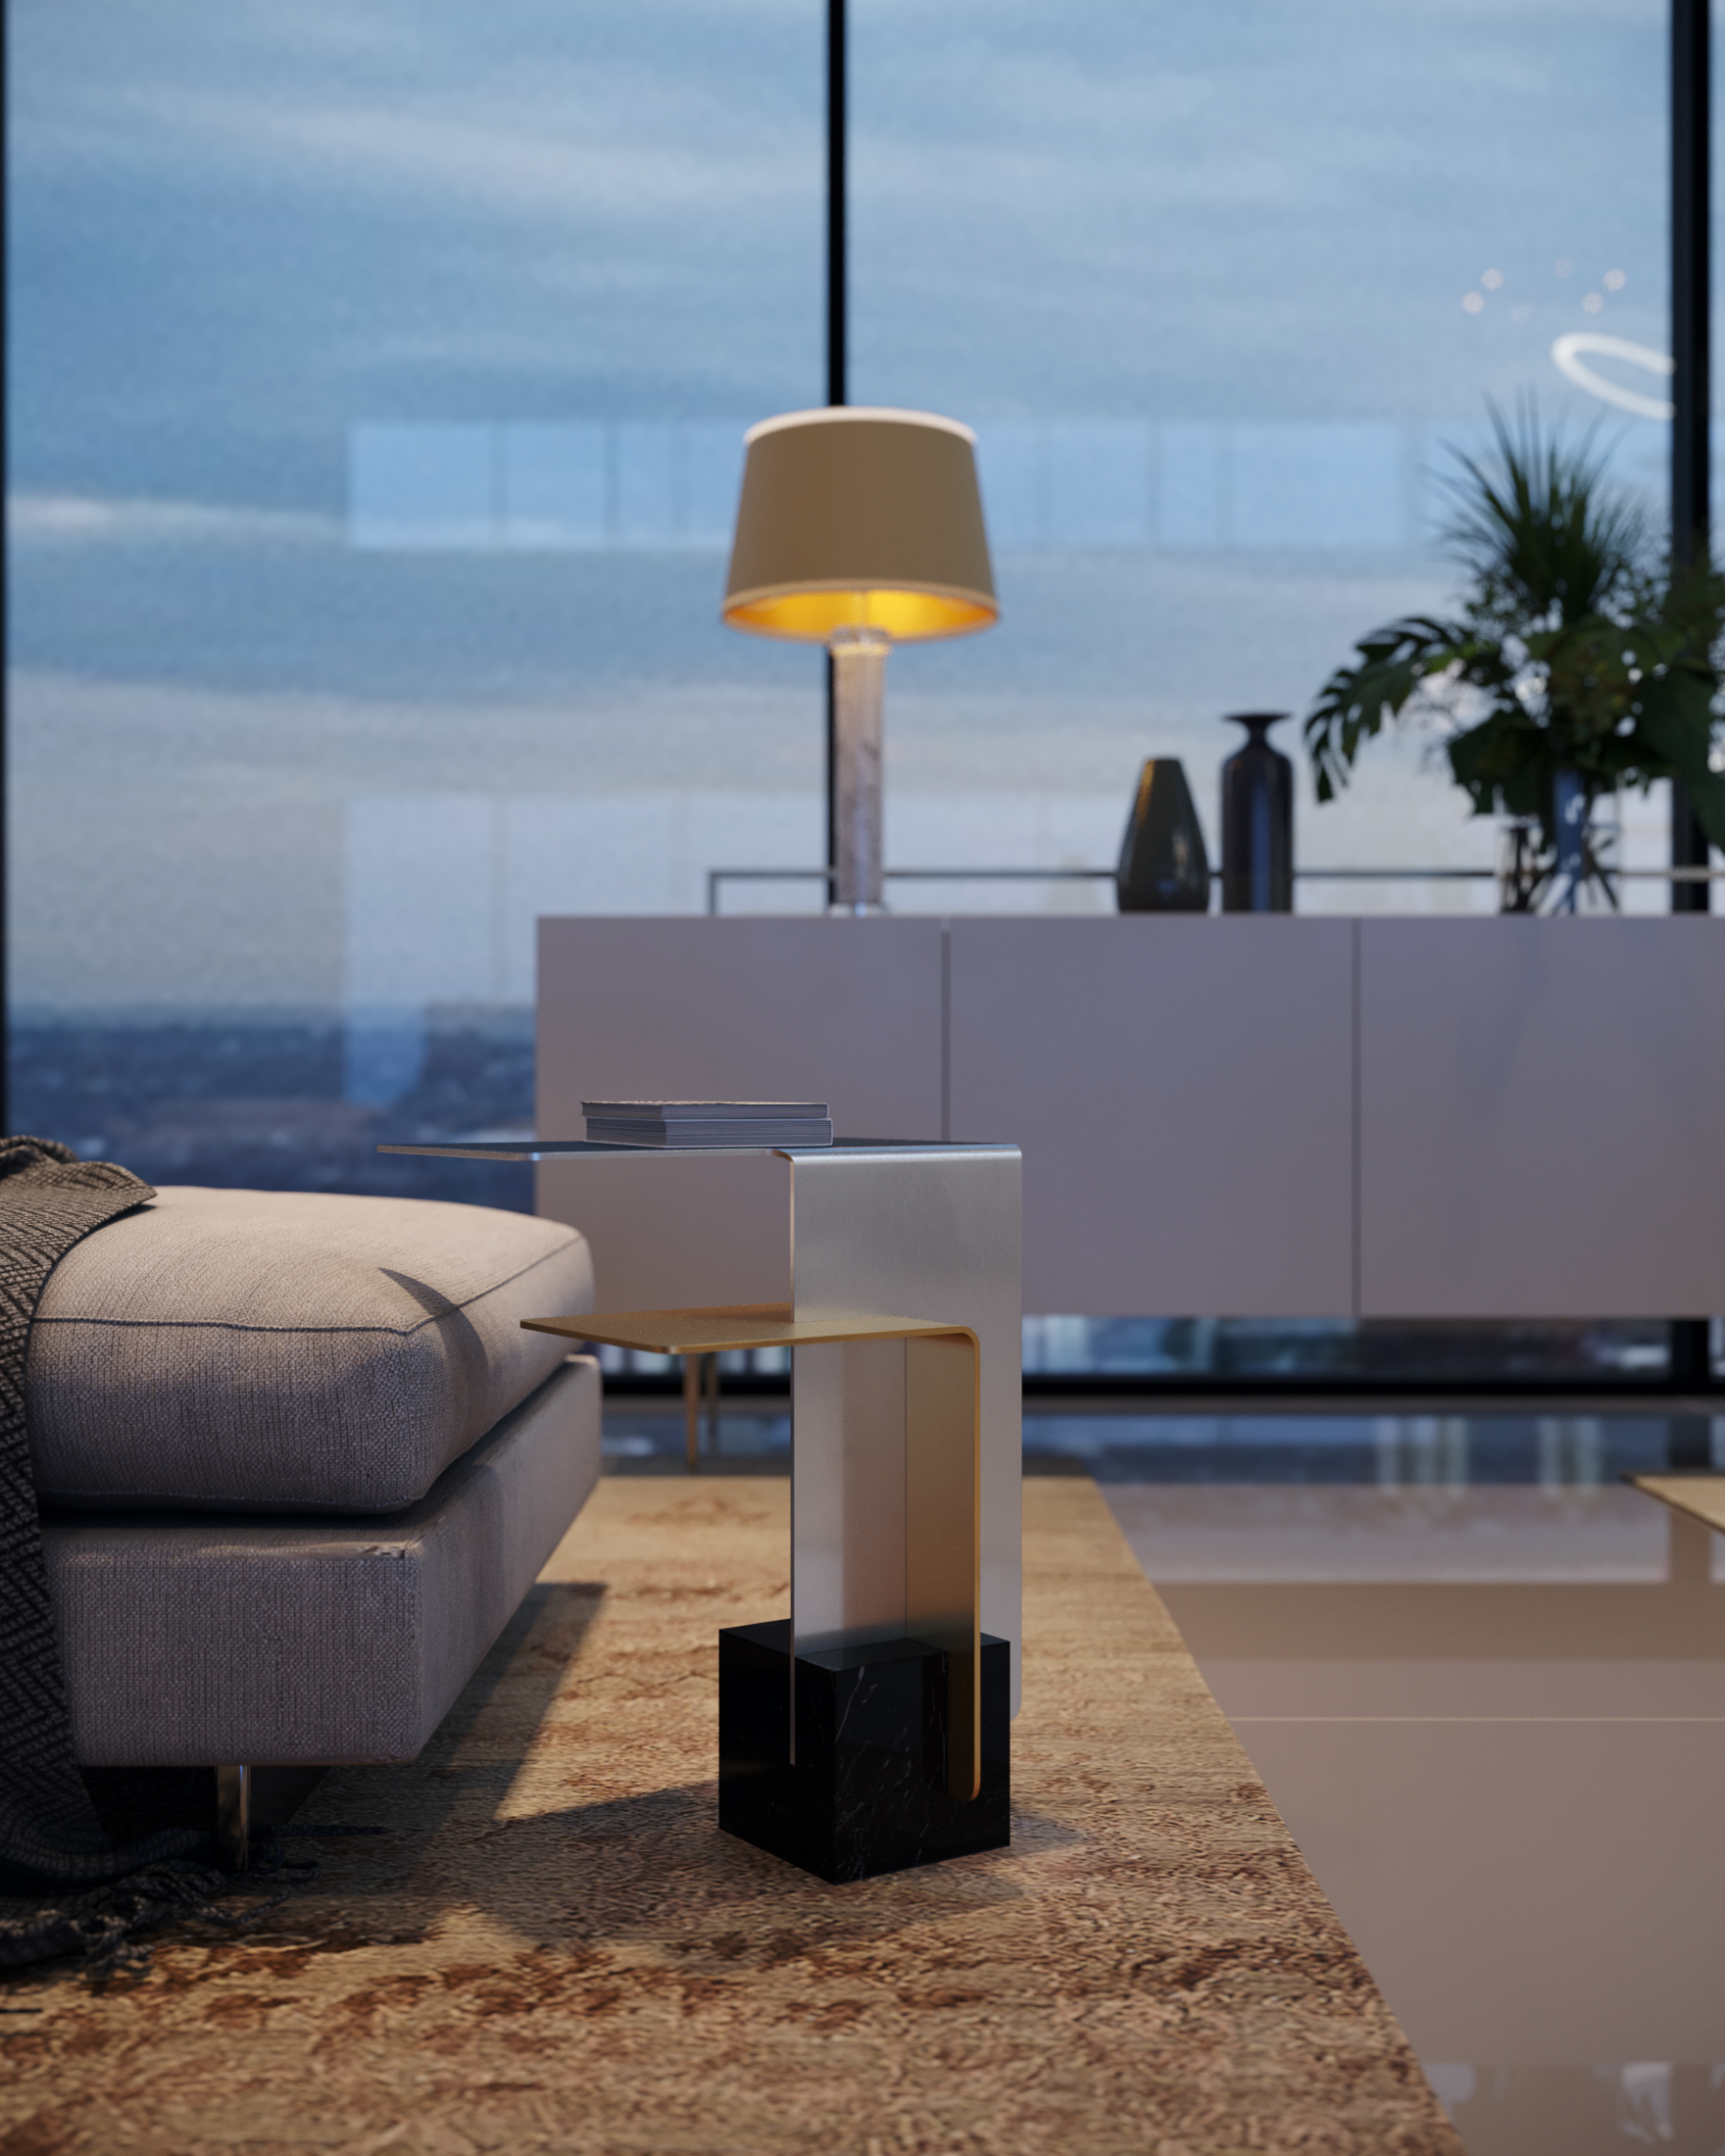 3D-visuals-trends-for-2021-2022-interior-and-exterior-spaces19